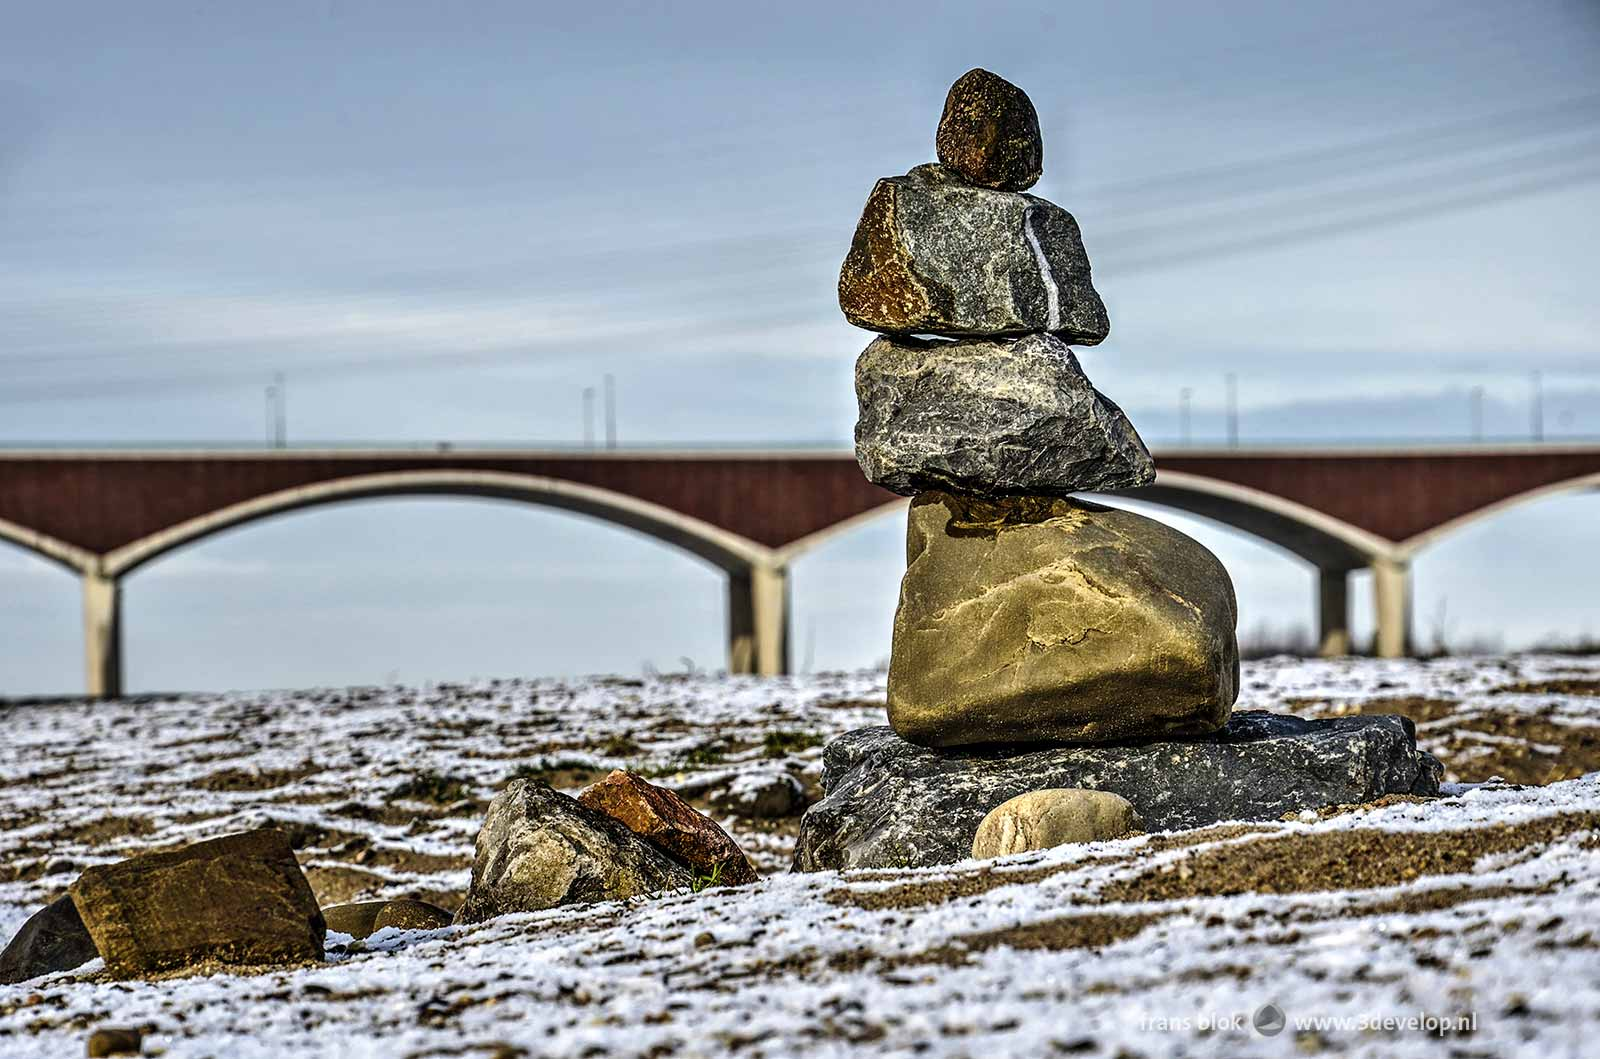 Photo of a cairn in the floodplains near Nijmegen, covered with a thin layer of snow, with city bridge The Crossing in the background